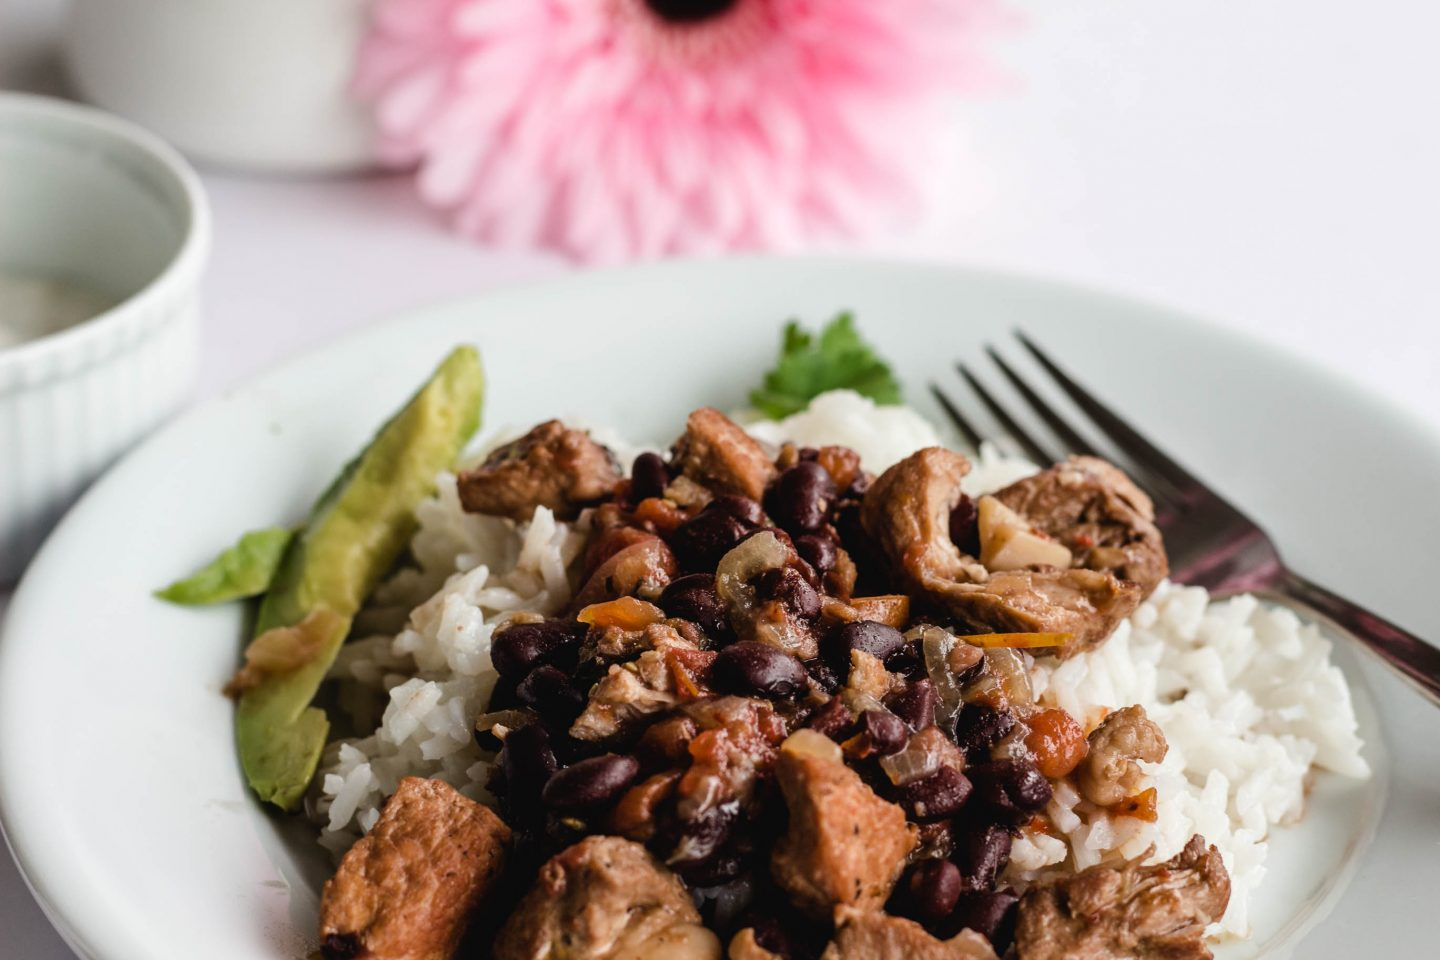 Plate tomatillo and pork stew over rice